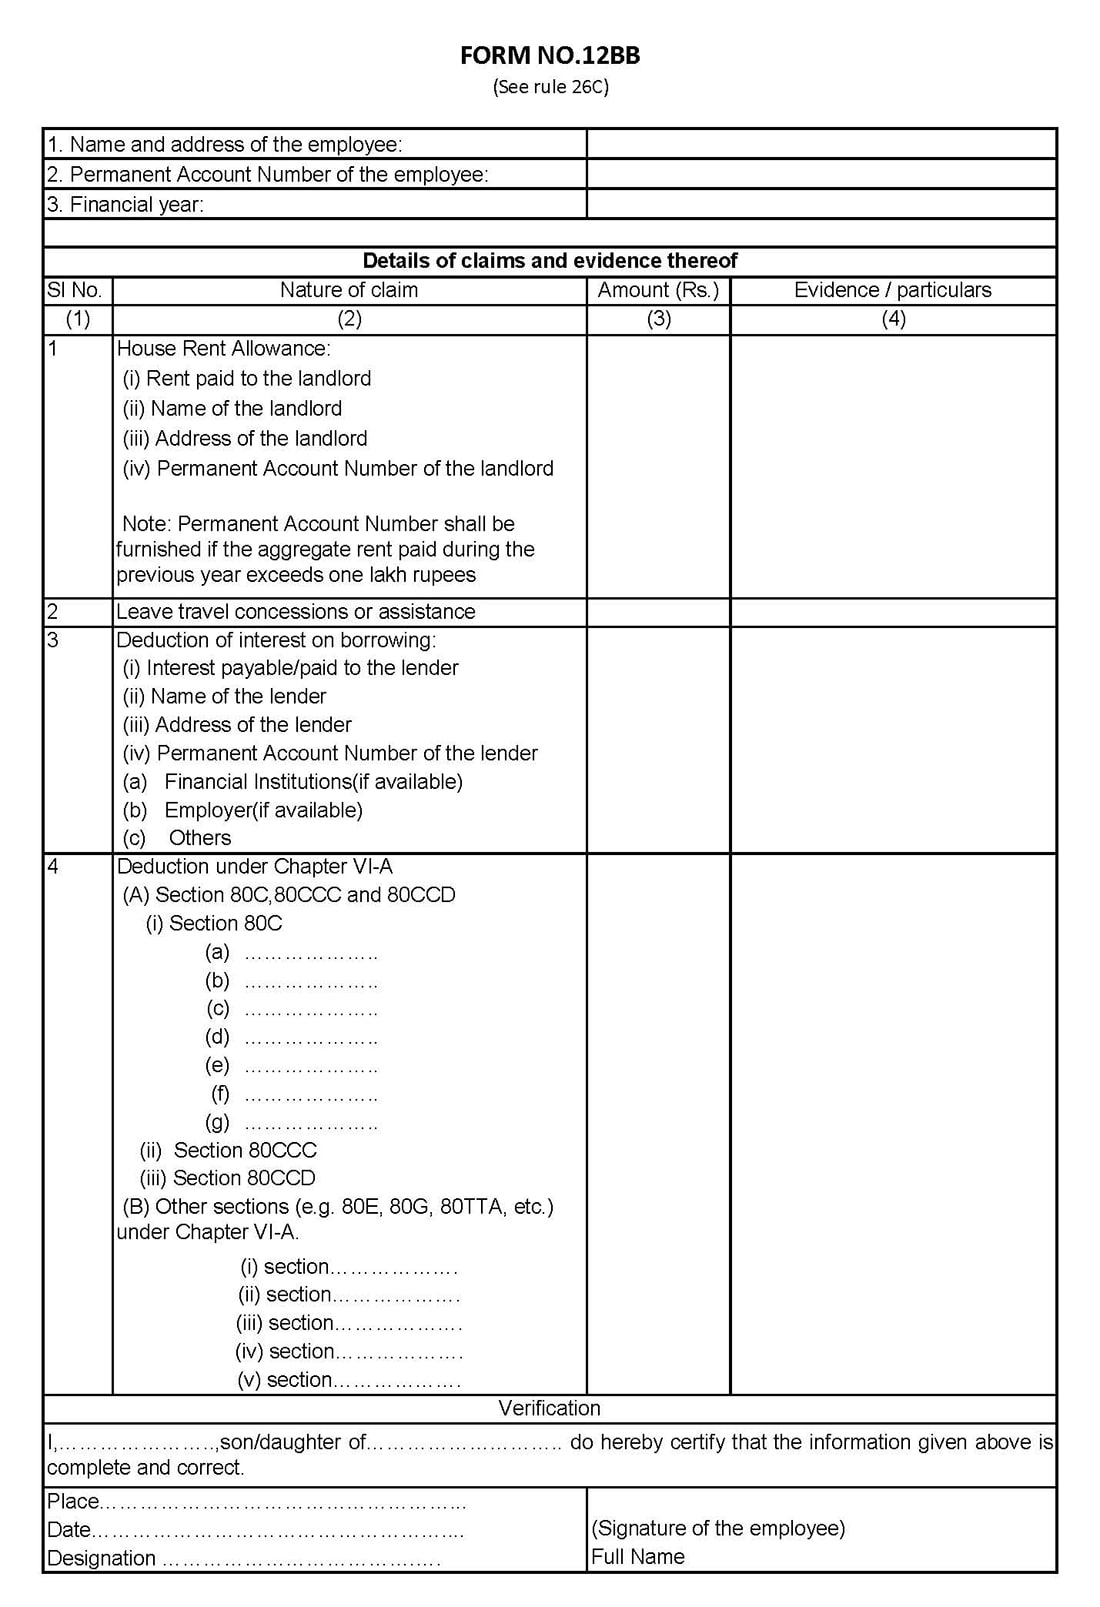 form 12bb   generator form 12bb for fy  2019